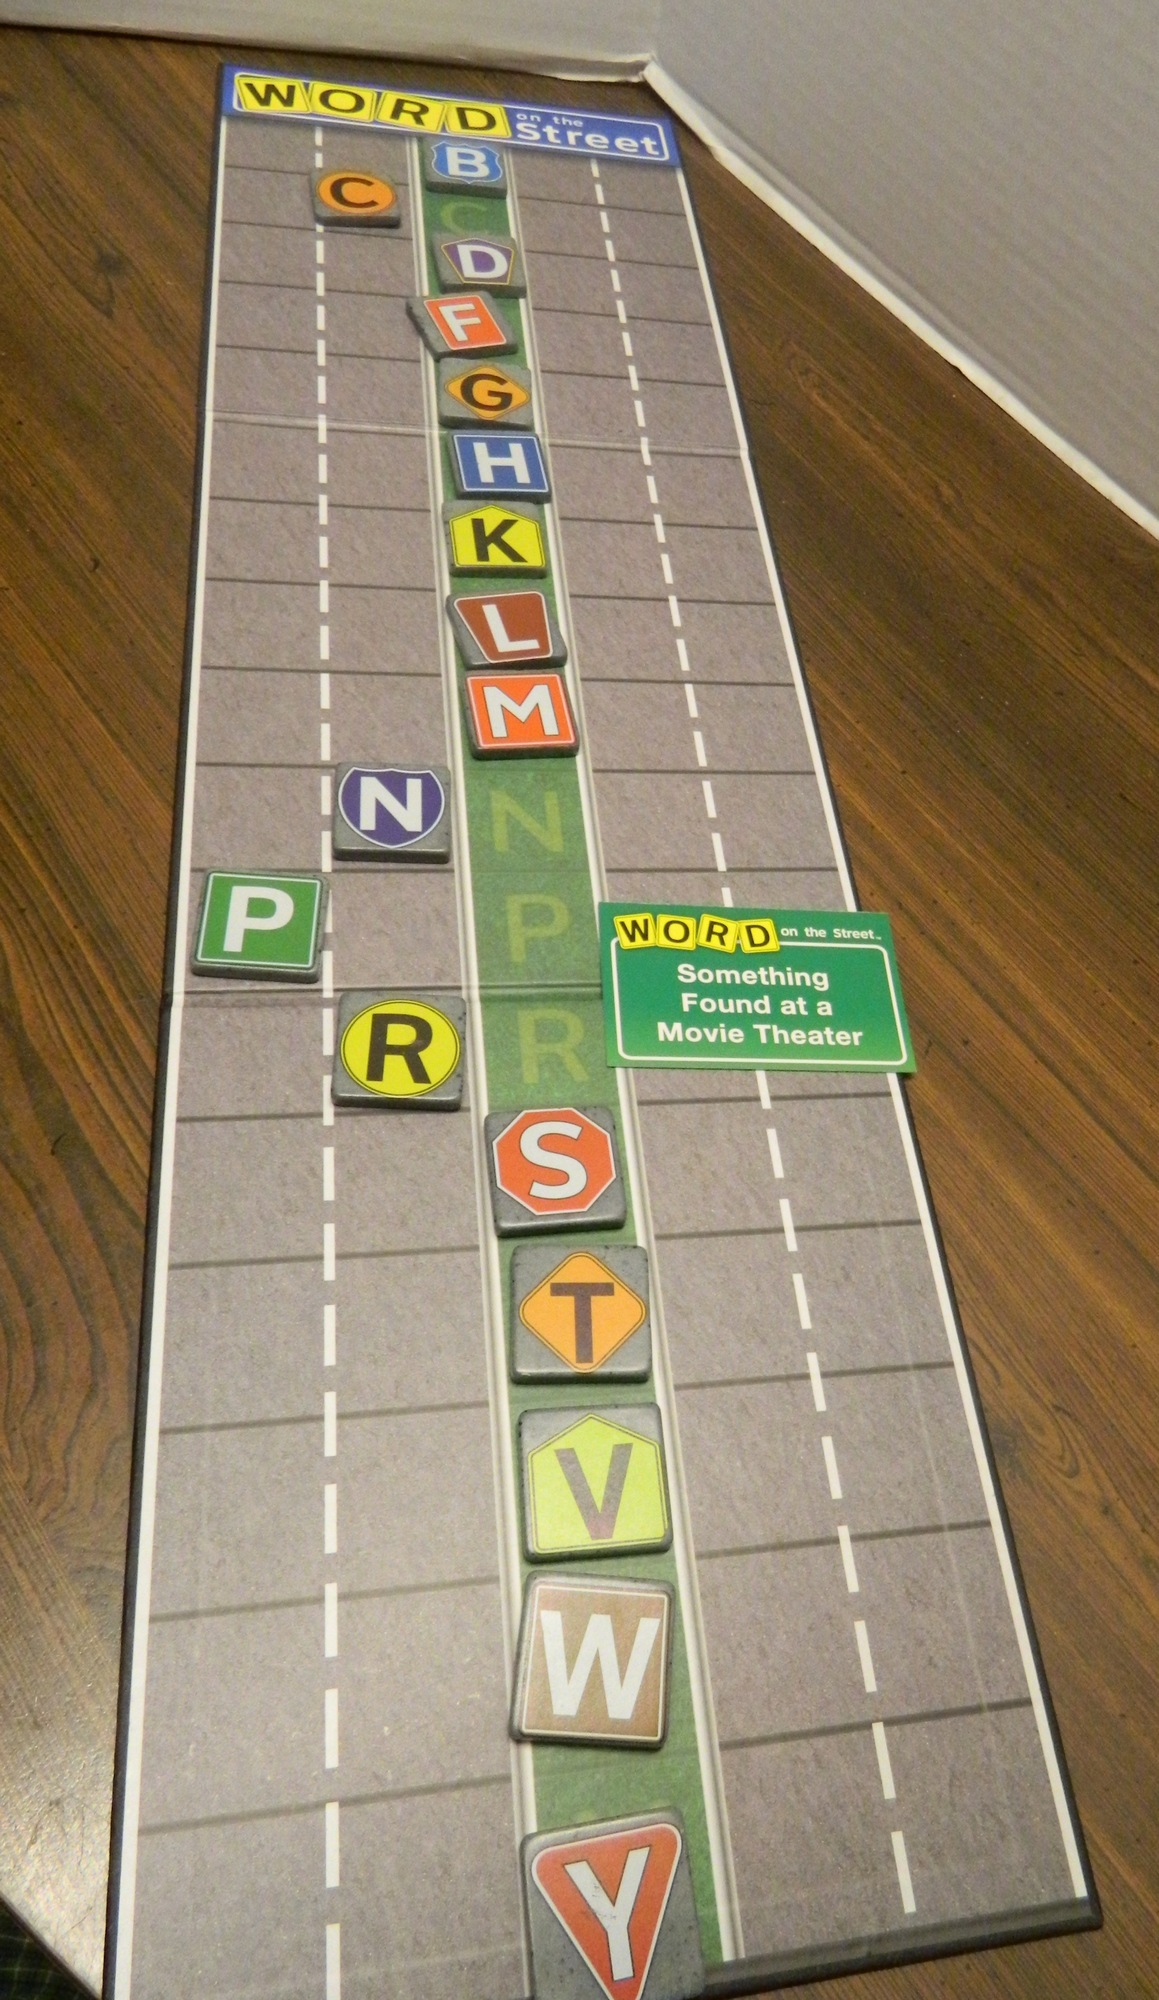 Word on the street board game review and rules geeky hobbies making words in word on the street publicscrutiny Choice Image